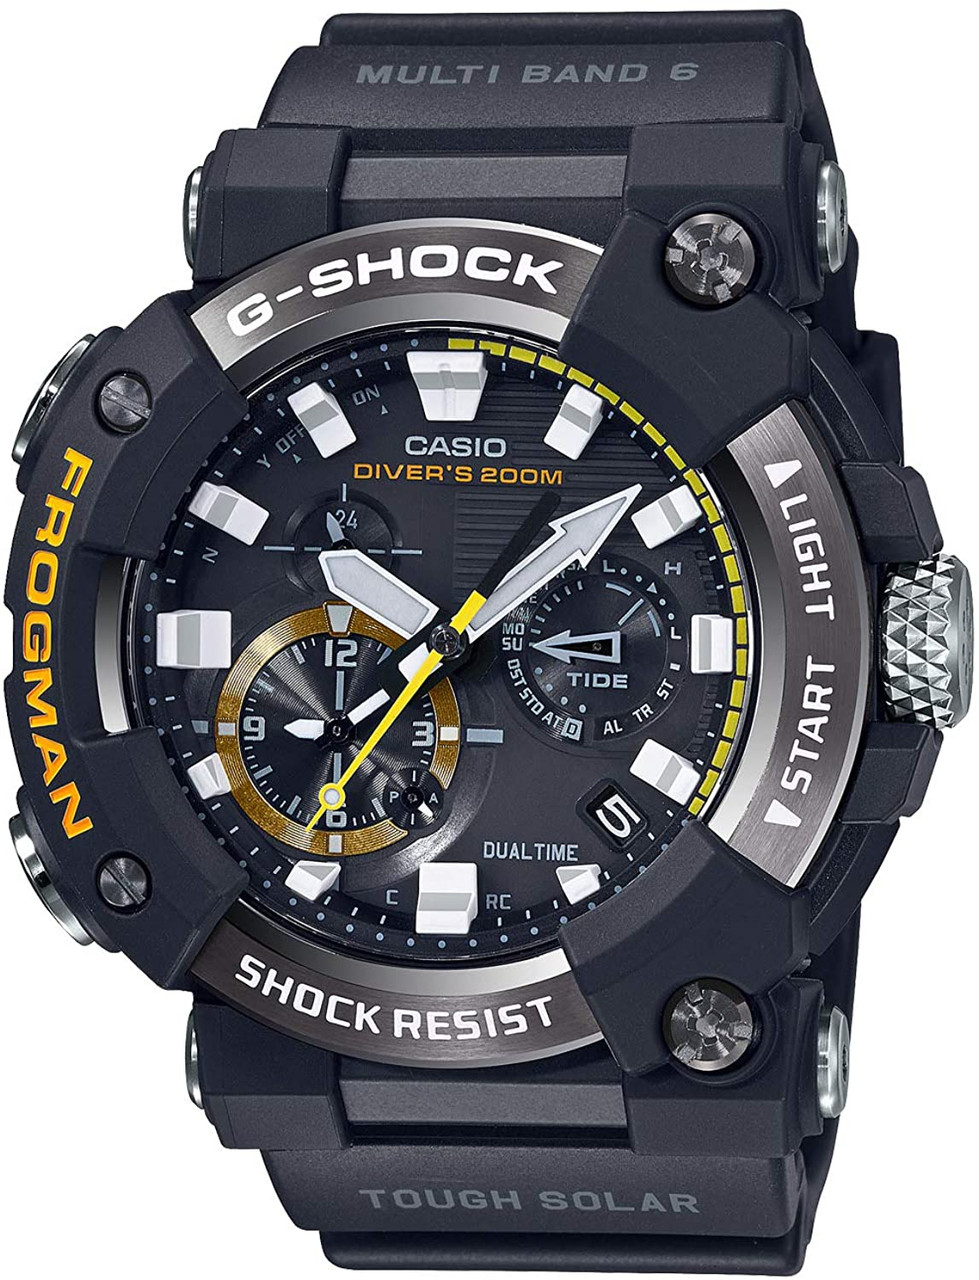 G-Shock Frogman Analog Dive Watch GWF-A1000-1AJF